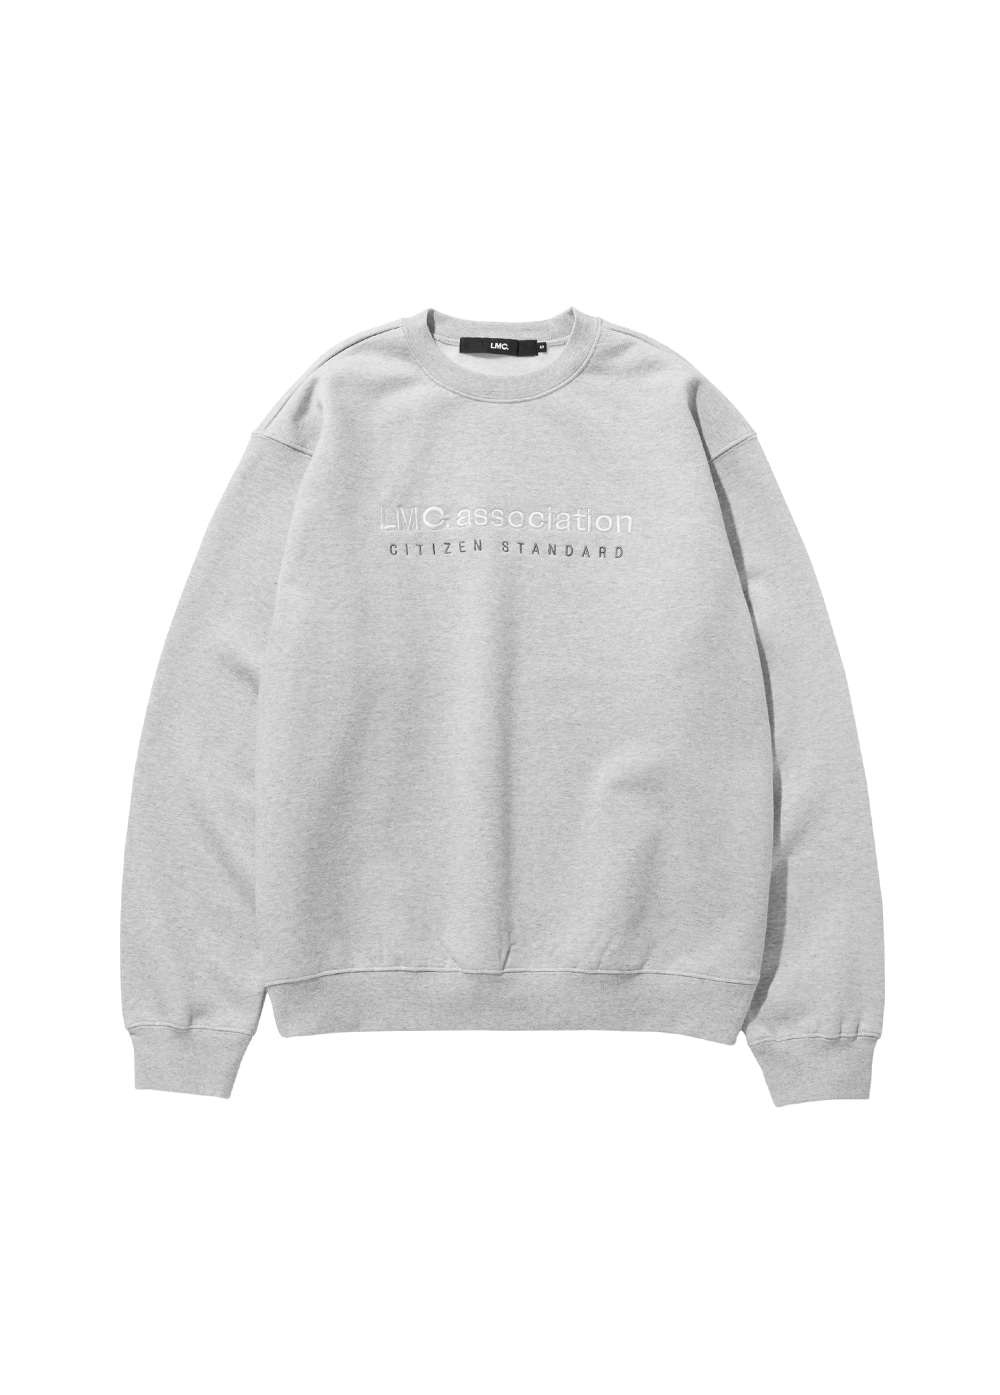 LMC ASSOCIATION EMB SWEATSHIRT heather gray